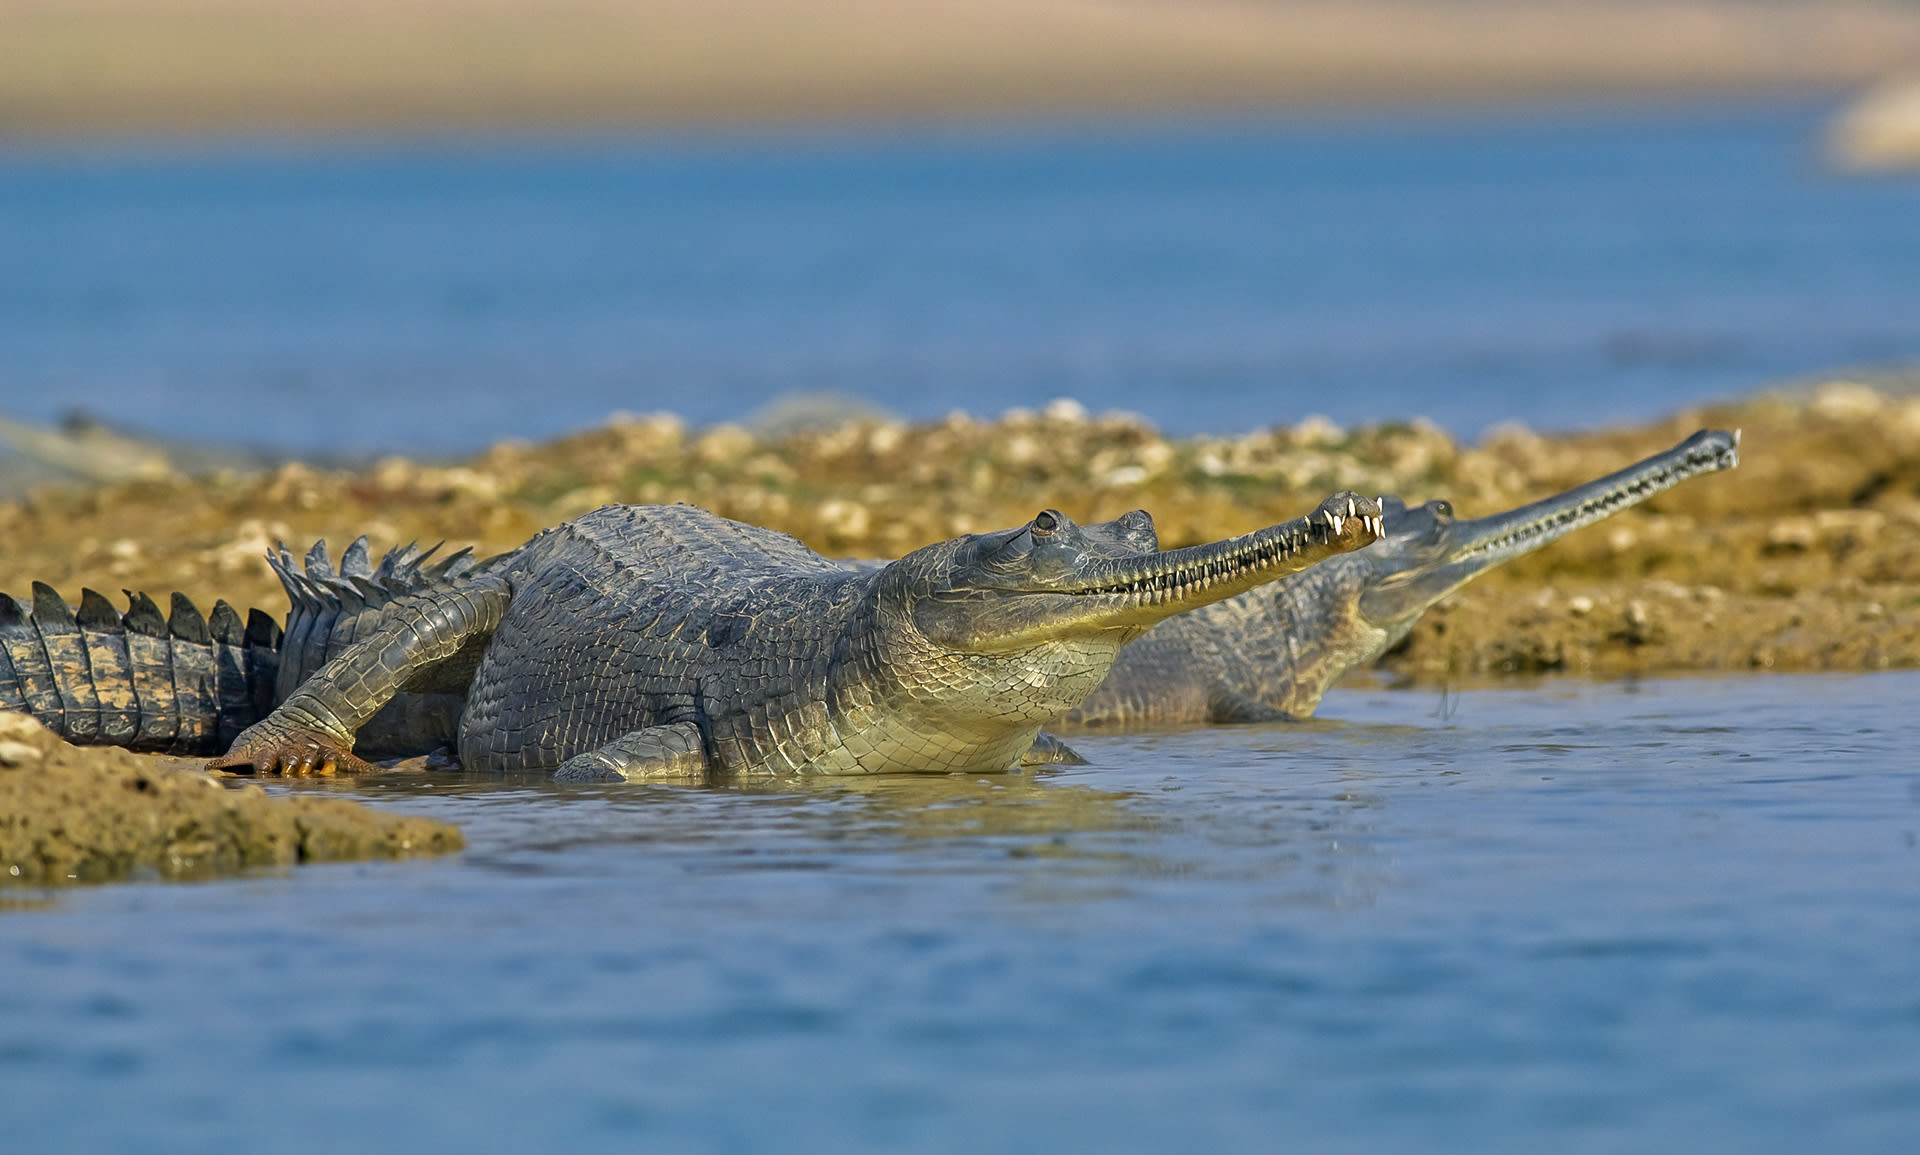 Gharials live in rivers and leave the water only to nest or bask in the sun (as seen here along the banks of Chambal River).  Photo: Dhritiman Mukherjee  Cover photo: Every winter, flamingos flock, feed, and breed by the thousands at Gujarat's Little Rann of Kutch.  Cover photo: Dhritiman Mukherjee